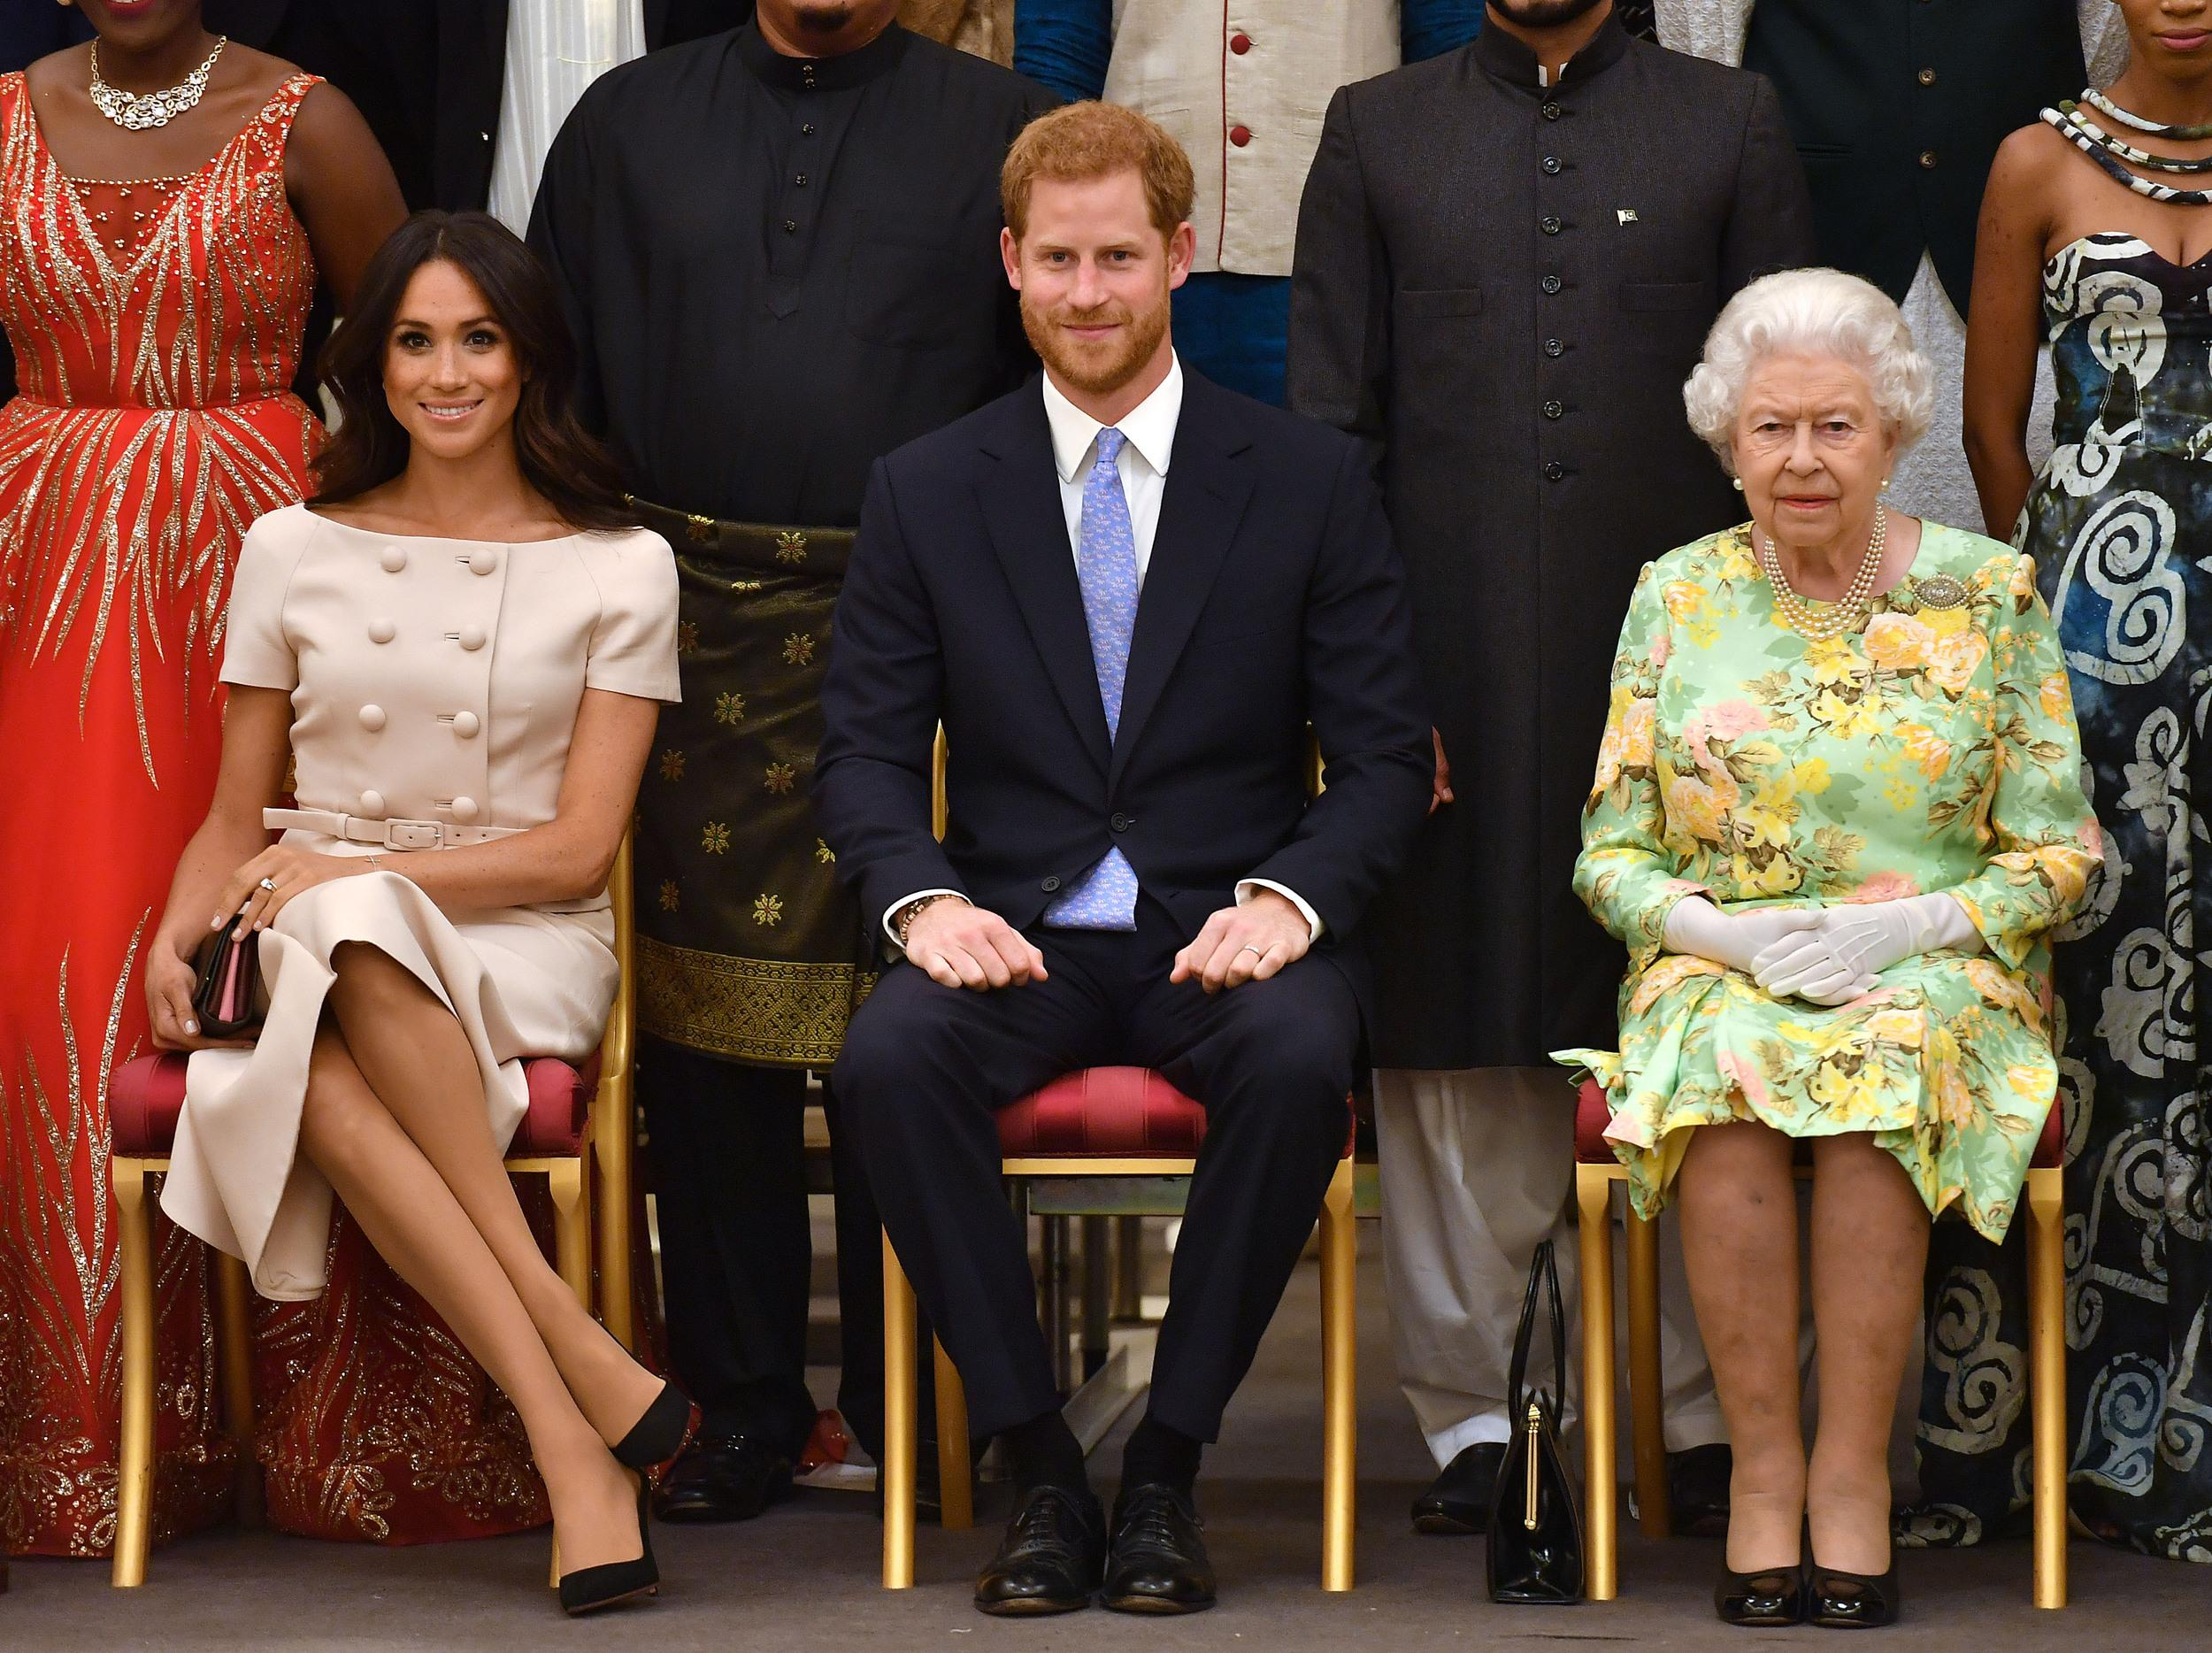 TOPSHOT - (L-R) Meghan, Duchess of Sussex, Britain's Prince Harry, Duke of Sussex and Britain's Queen Elizabeth II pose for a picture during the Queen's Young Leaders Awards Ceremony on June 26, 2018 at Buckingham Palace in London. (Photo by John Stillwell / POOL / AFP)        (Photo credit should read JOHN STILLWELL/AFP/Getty Images)